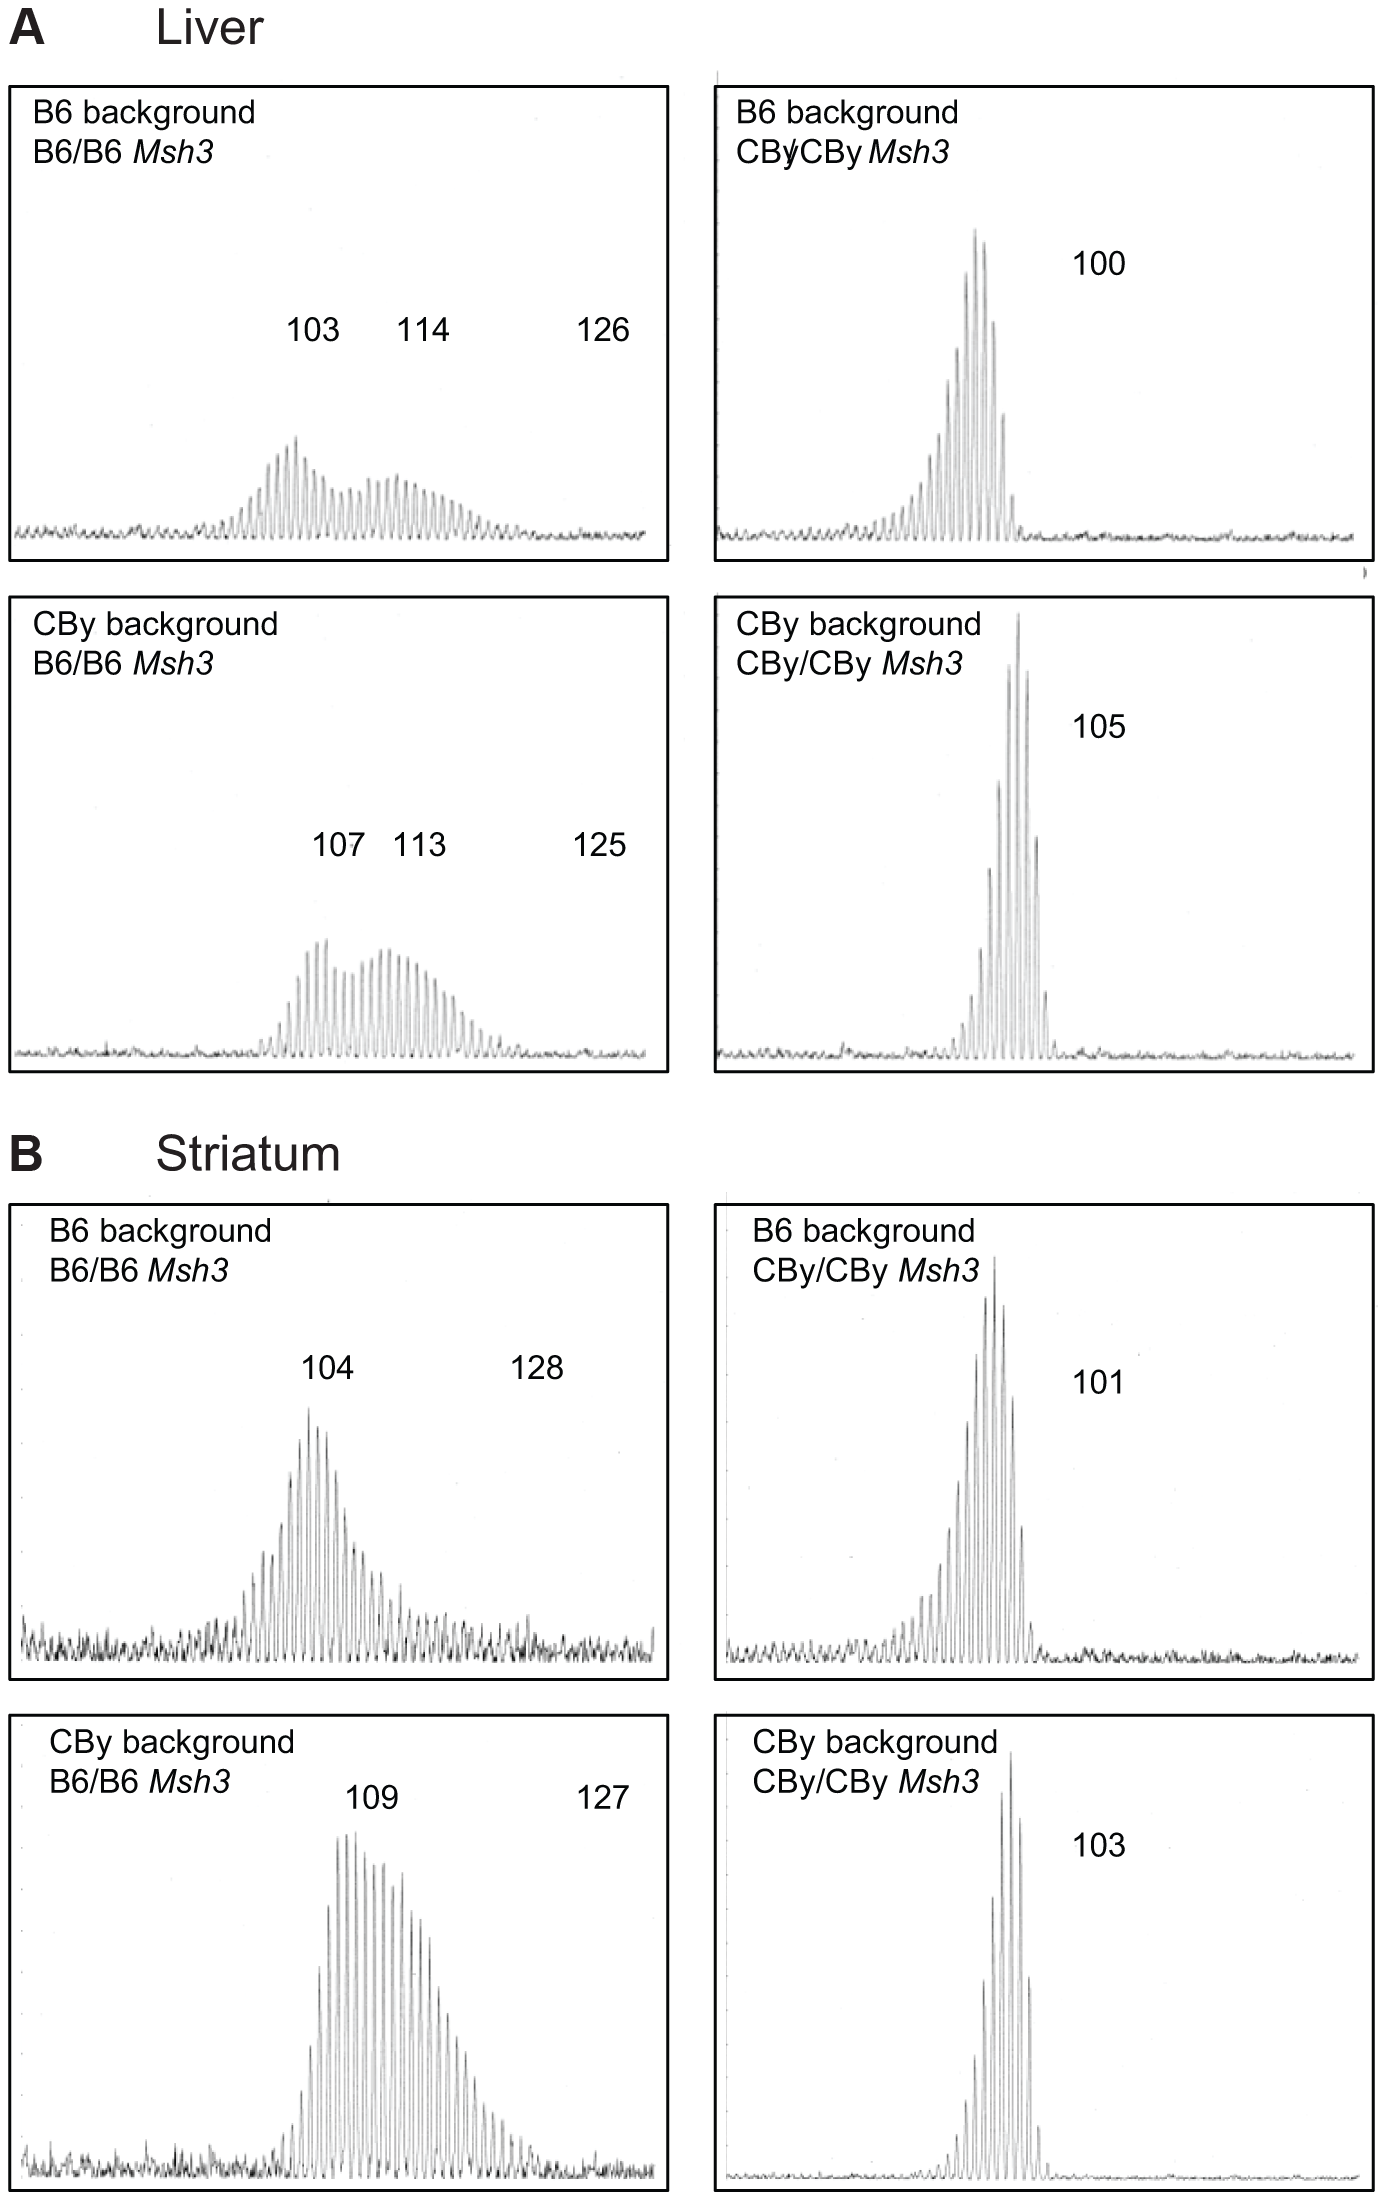 Representative CAG repeat distributions from reciprocal <i>Msh3</i> congenic lines of mice.